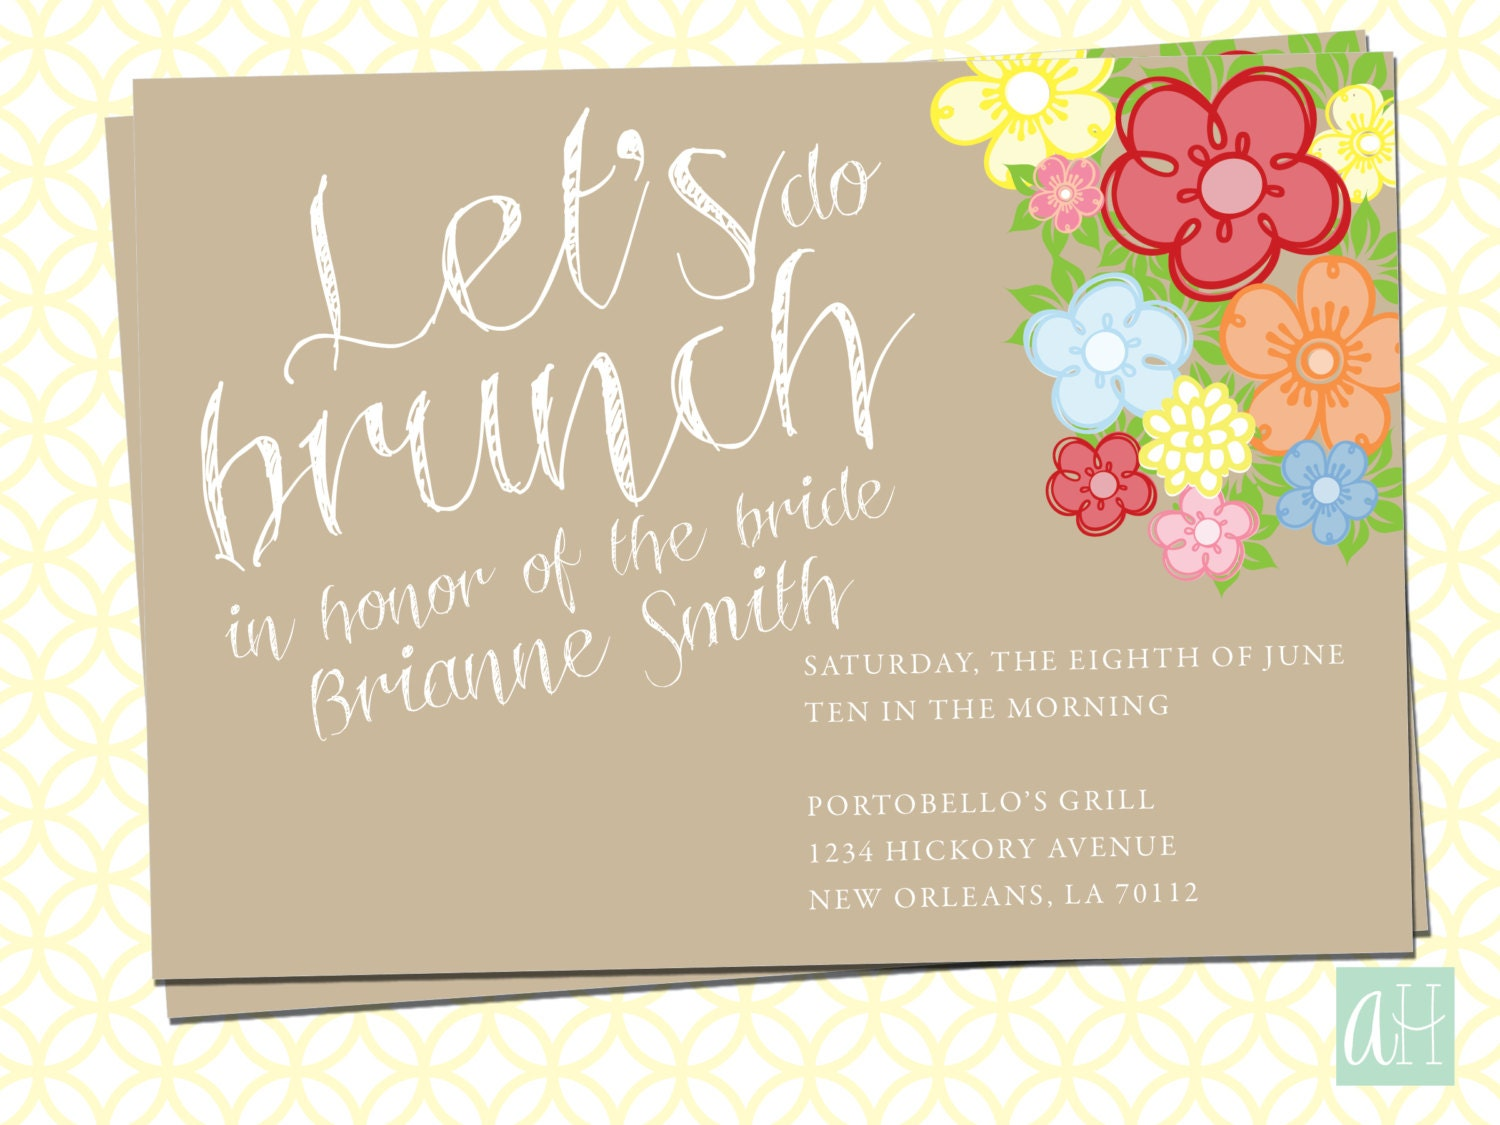 Printable bridal brunch invitation let 39 s do brunch for Wedding brunch invitations